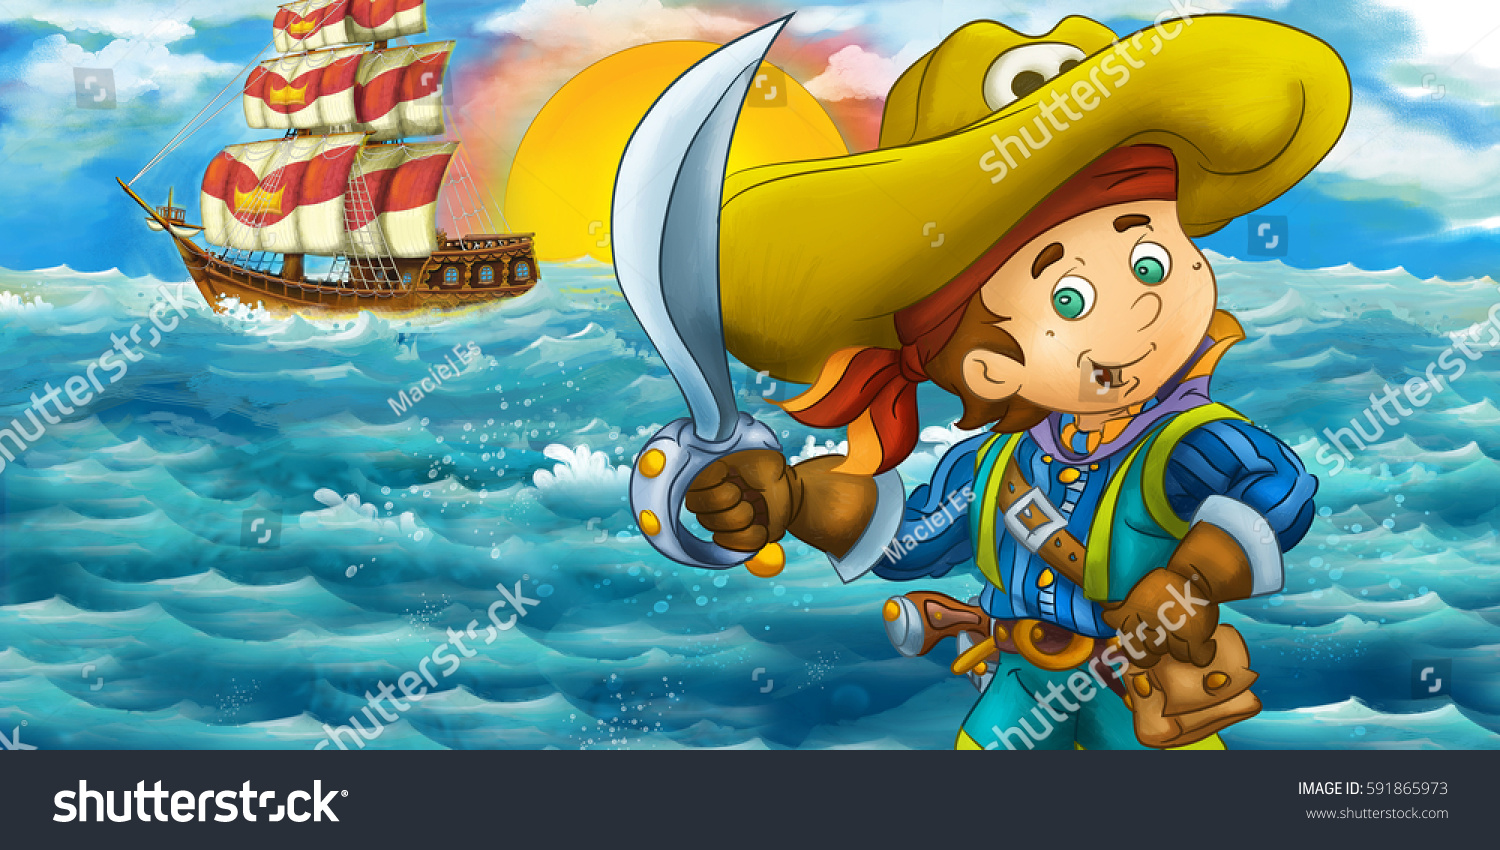 Cartoon Happy Pirate In Front Of A Wooden Ship